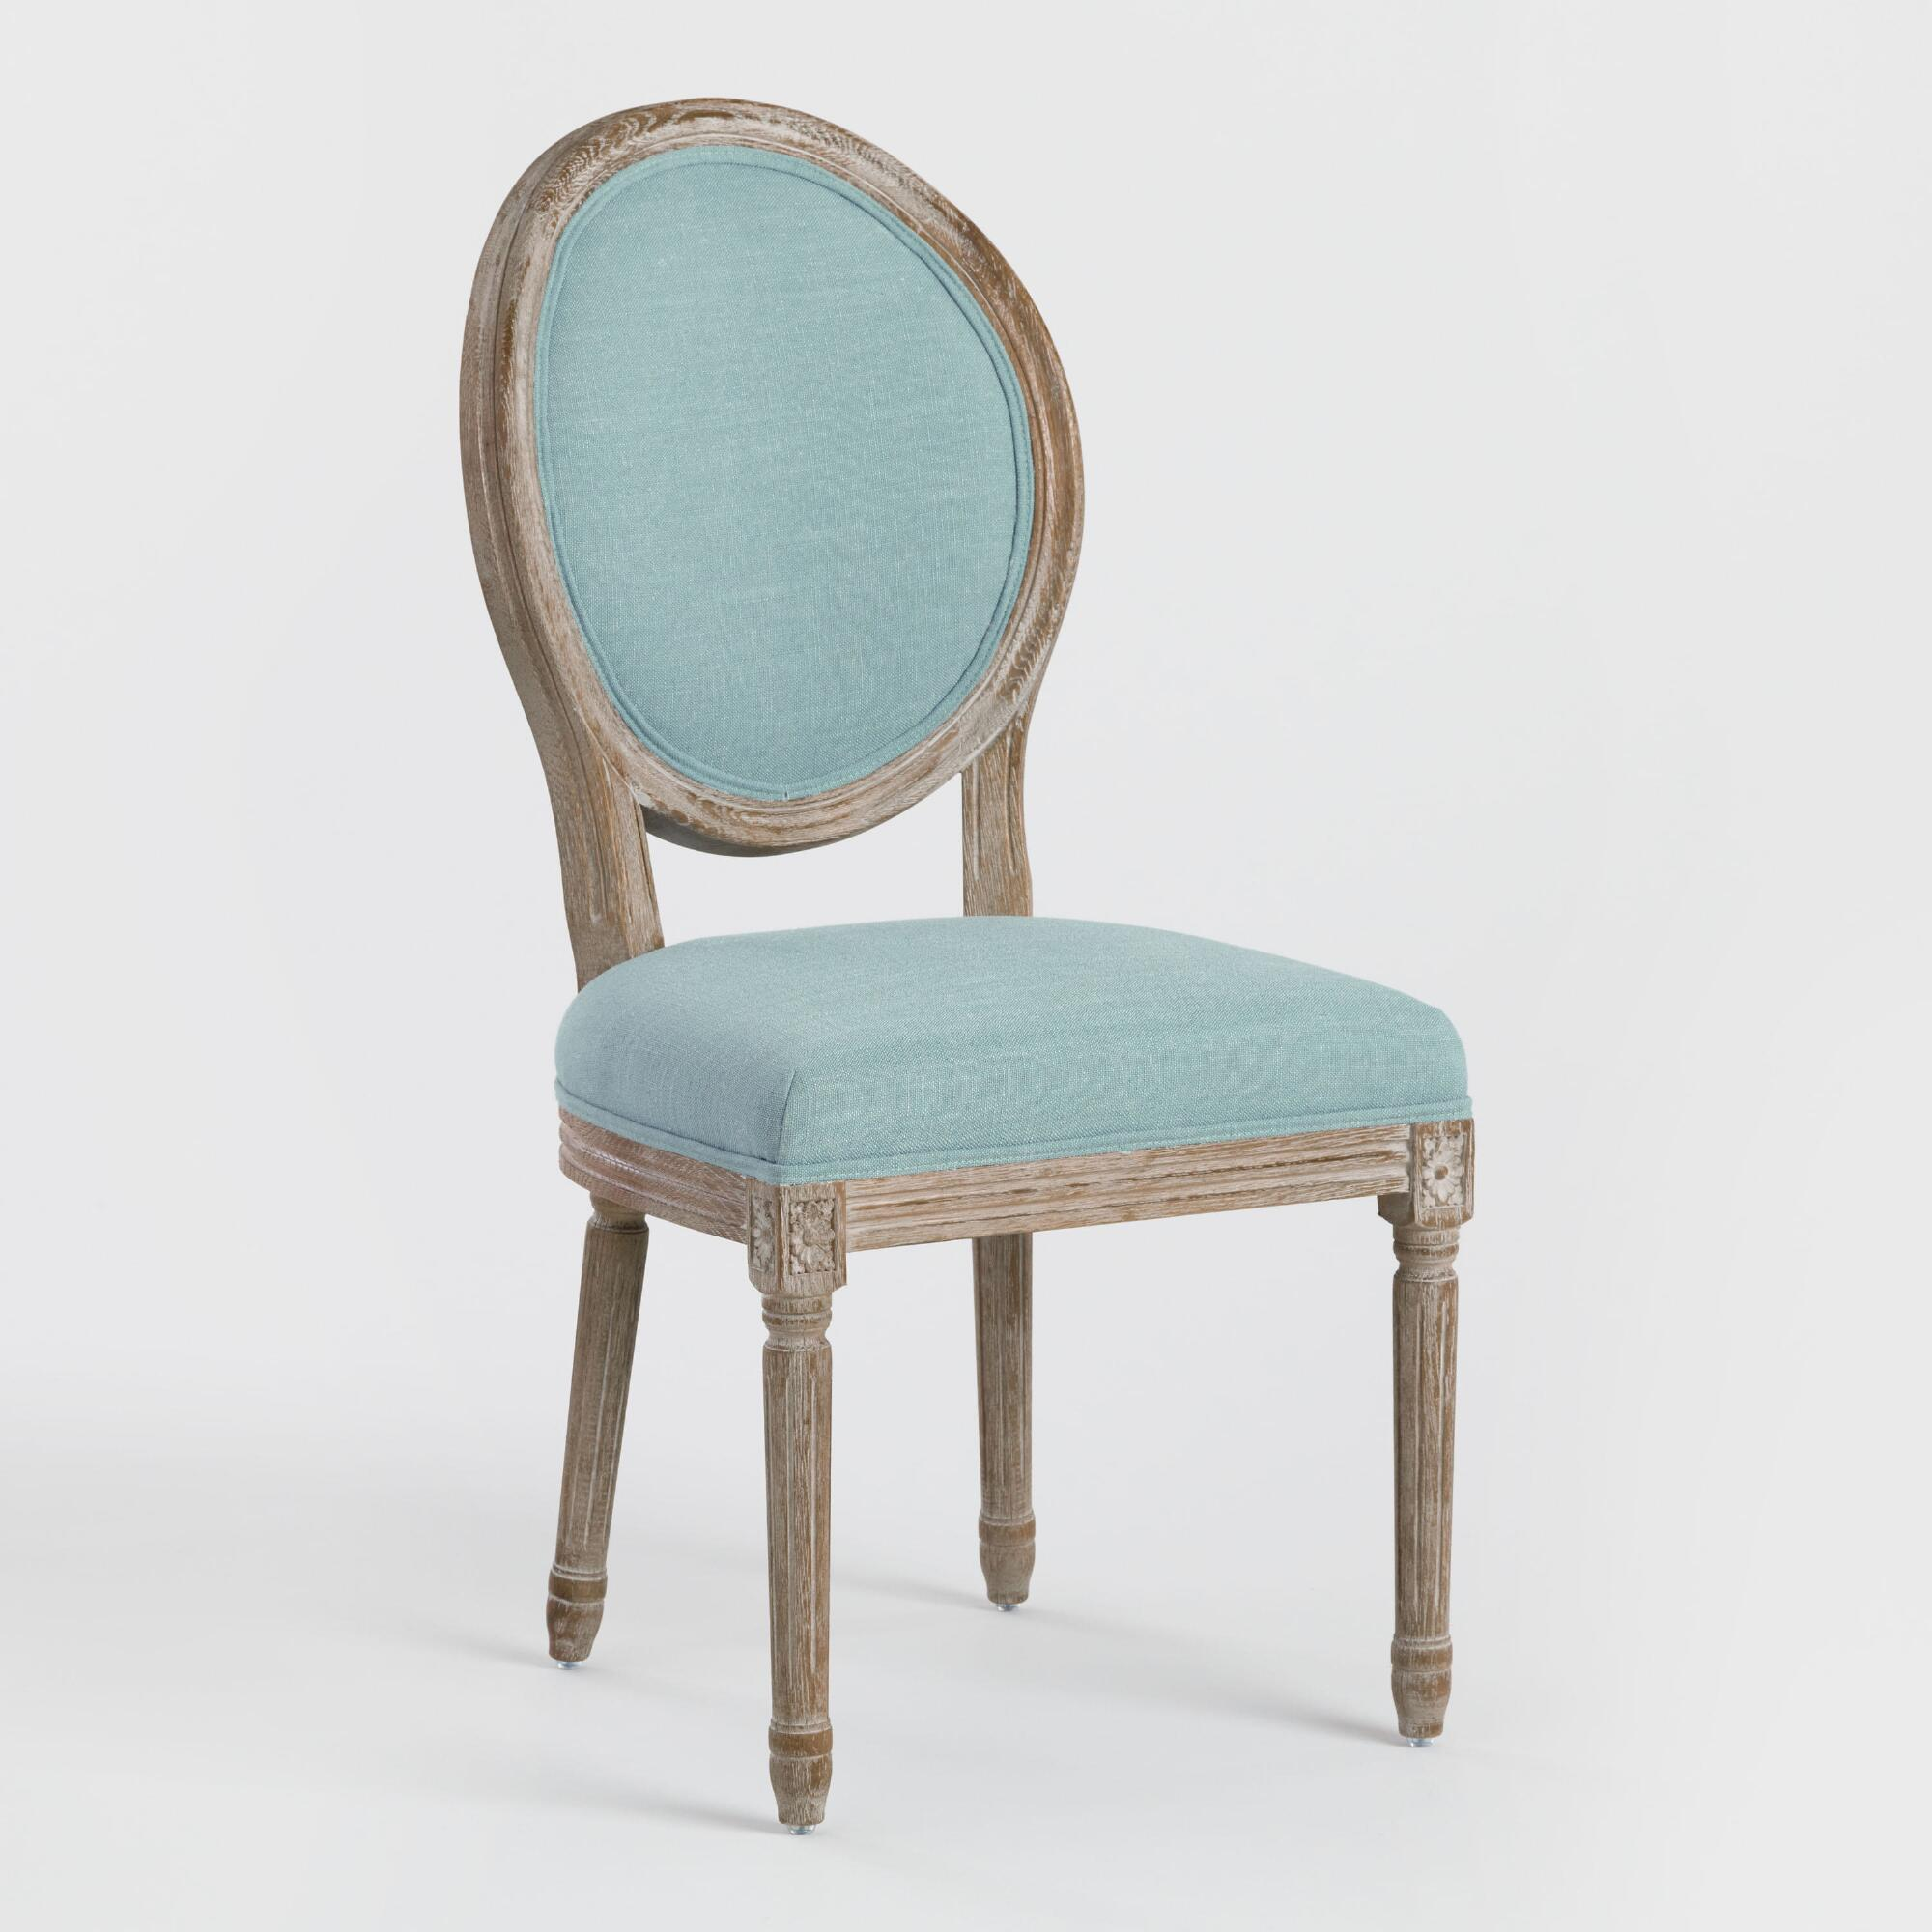 Round Back Dining Room Chairs: Blue Linen Paige Round Back Dining Chairs, Set Of 2